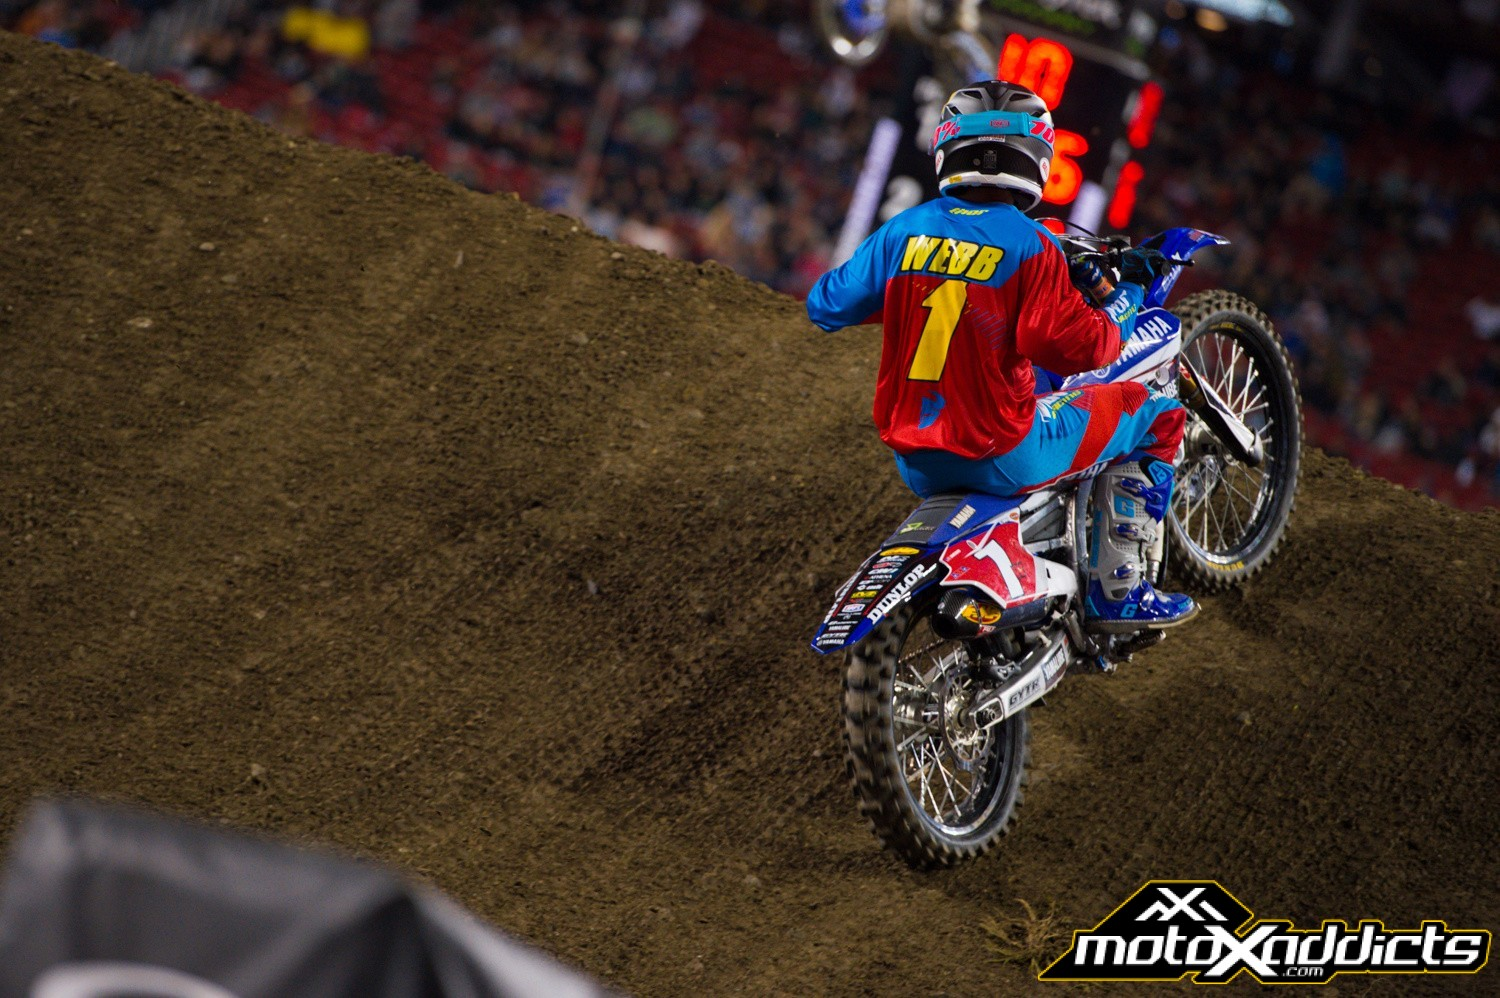 With a big crash while training the week before Santa Clara, Cooper Webb showed he is a clutch performer with the win.